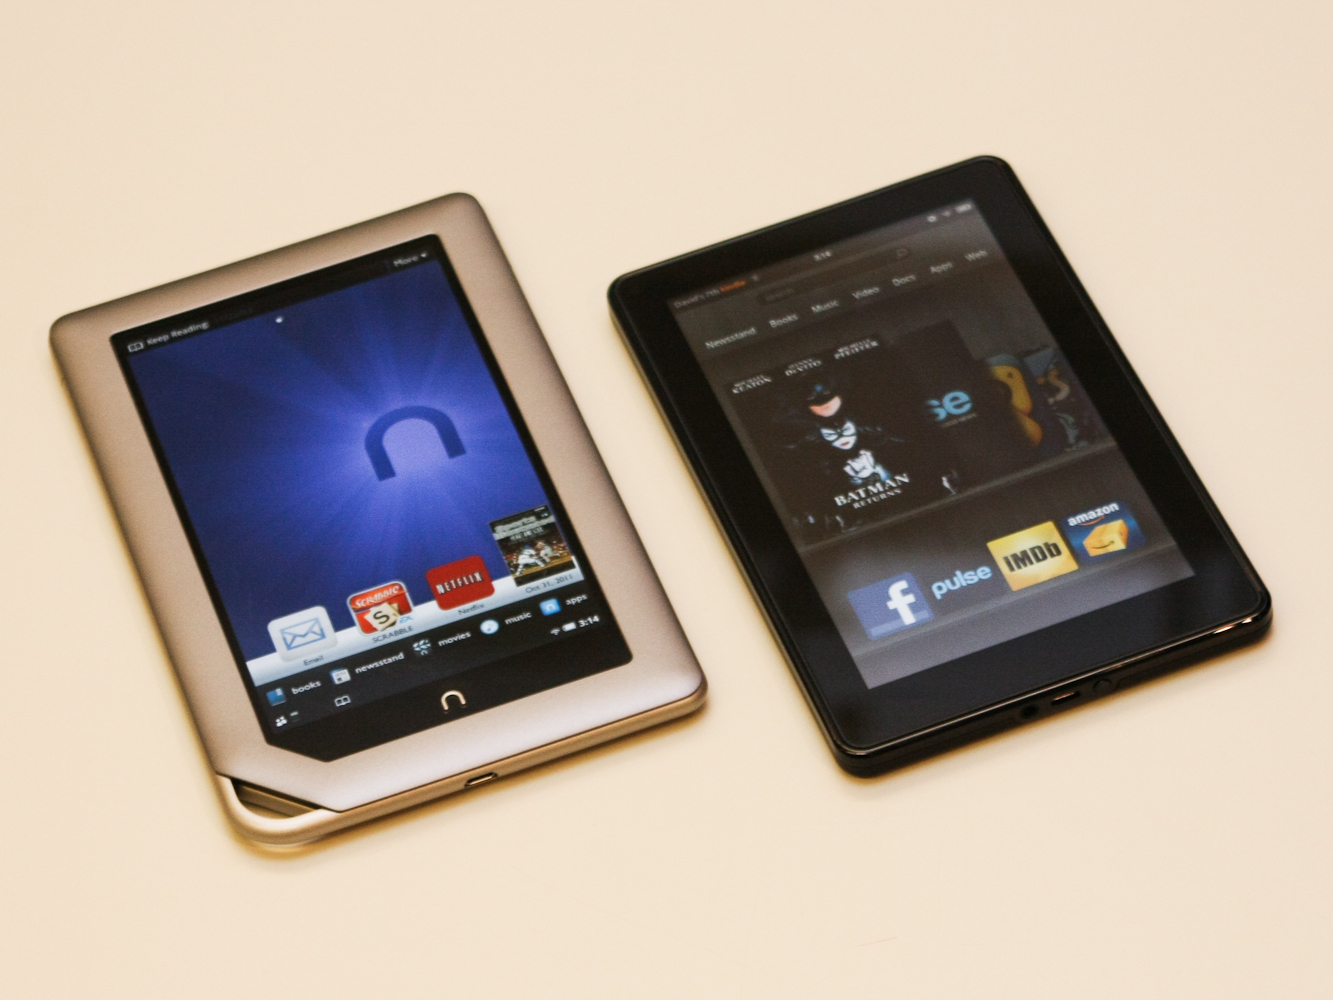 Amazon Kindle Fire and Nook Tablet